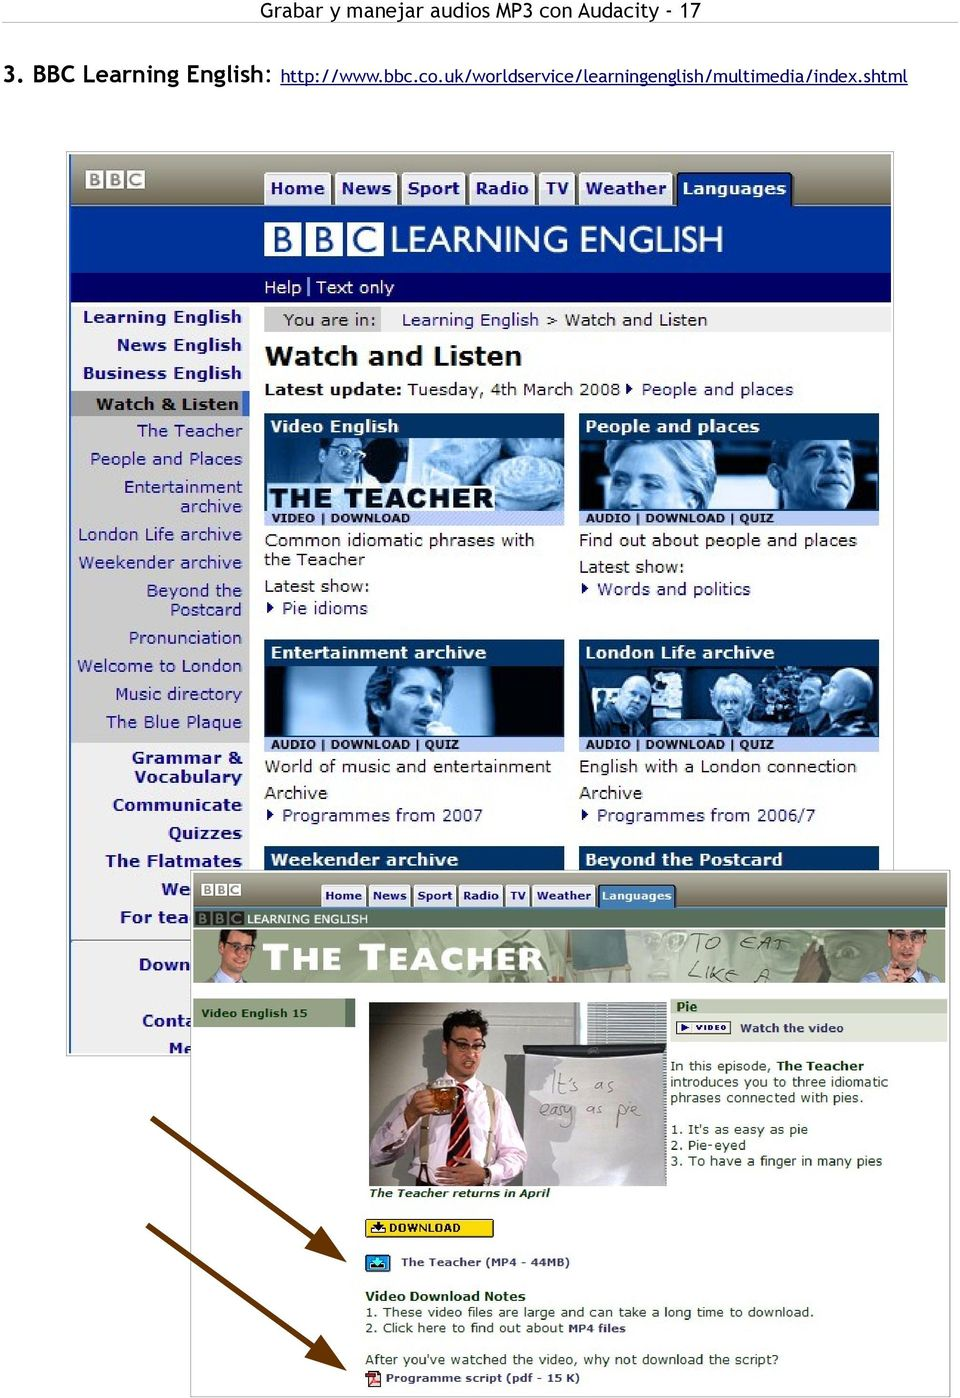 BBC Learning English: http://www.